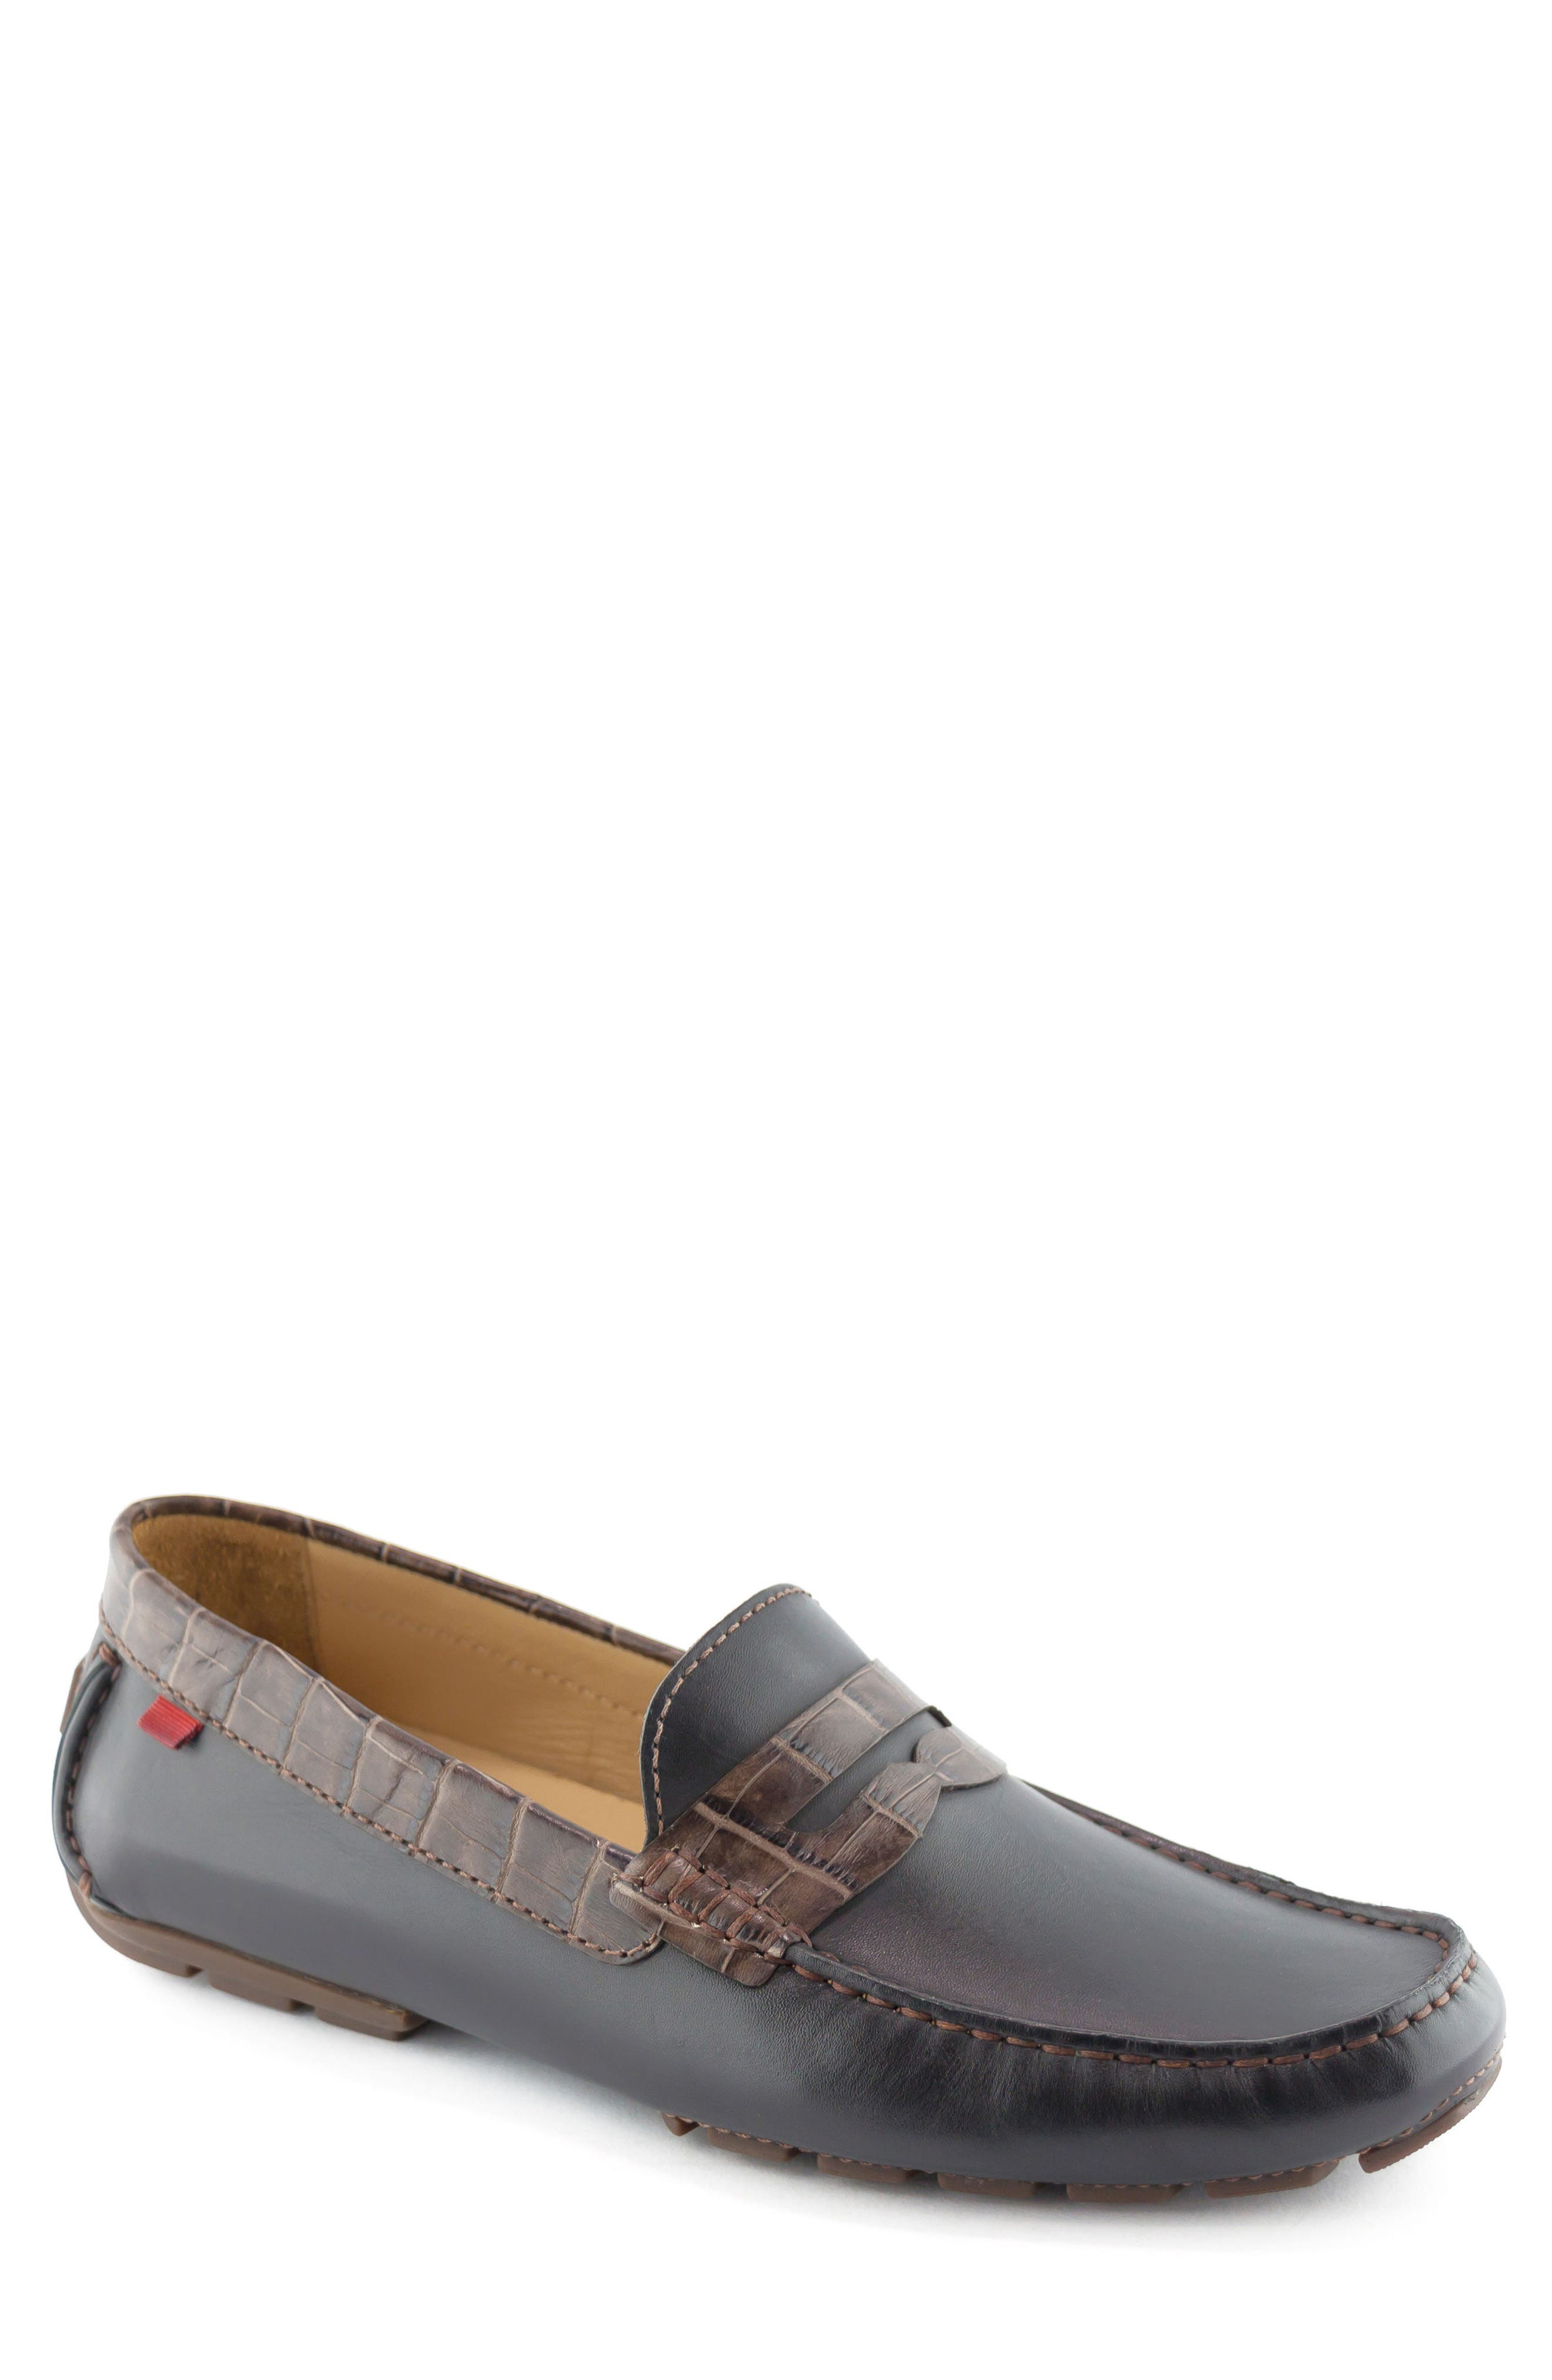 'Union Street' Penny Loafer,                         Main,                         color, Black/ Brown